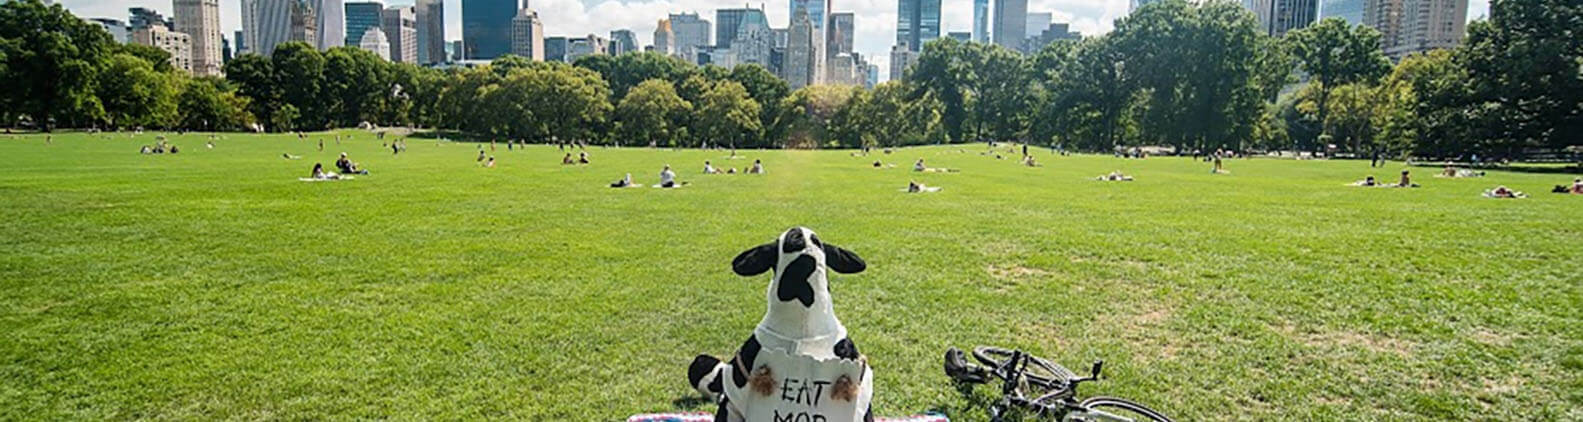 Cows rites of passage in New York City-Cow relaxing in Cantral Park